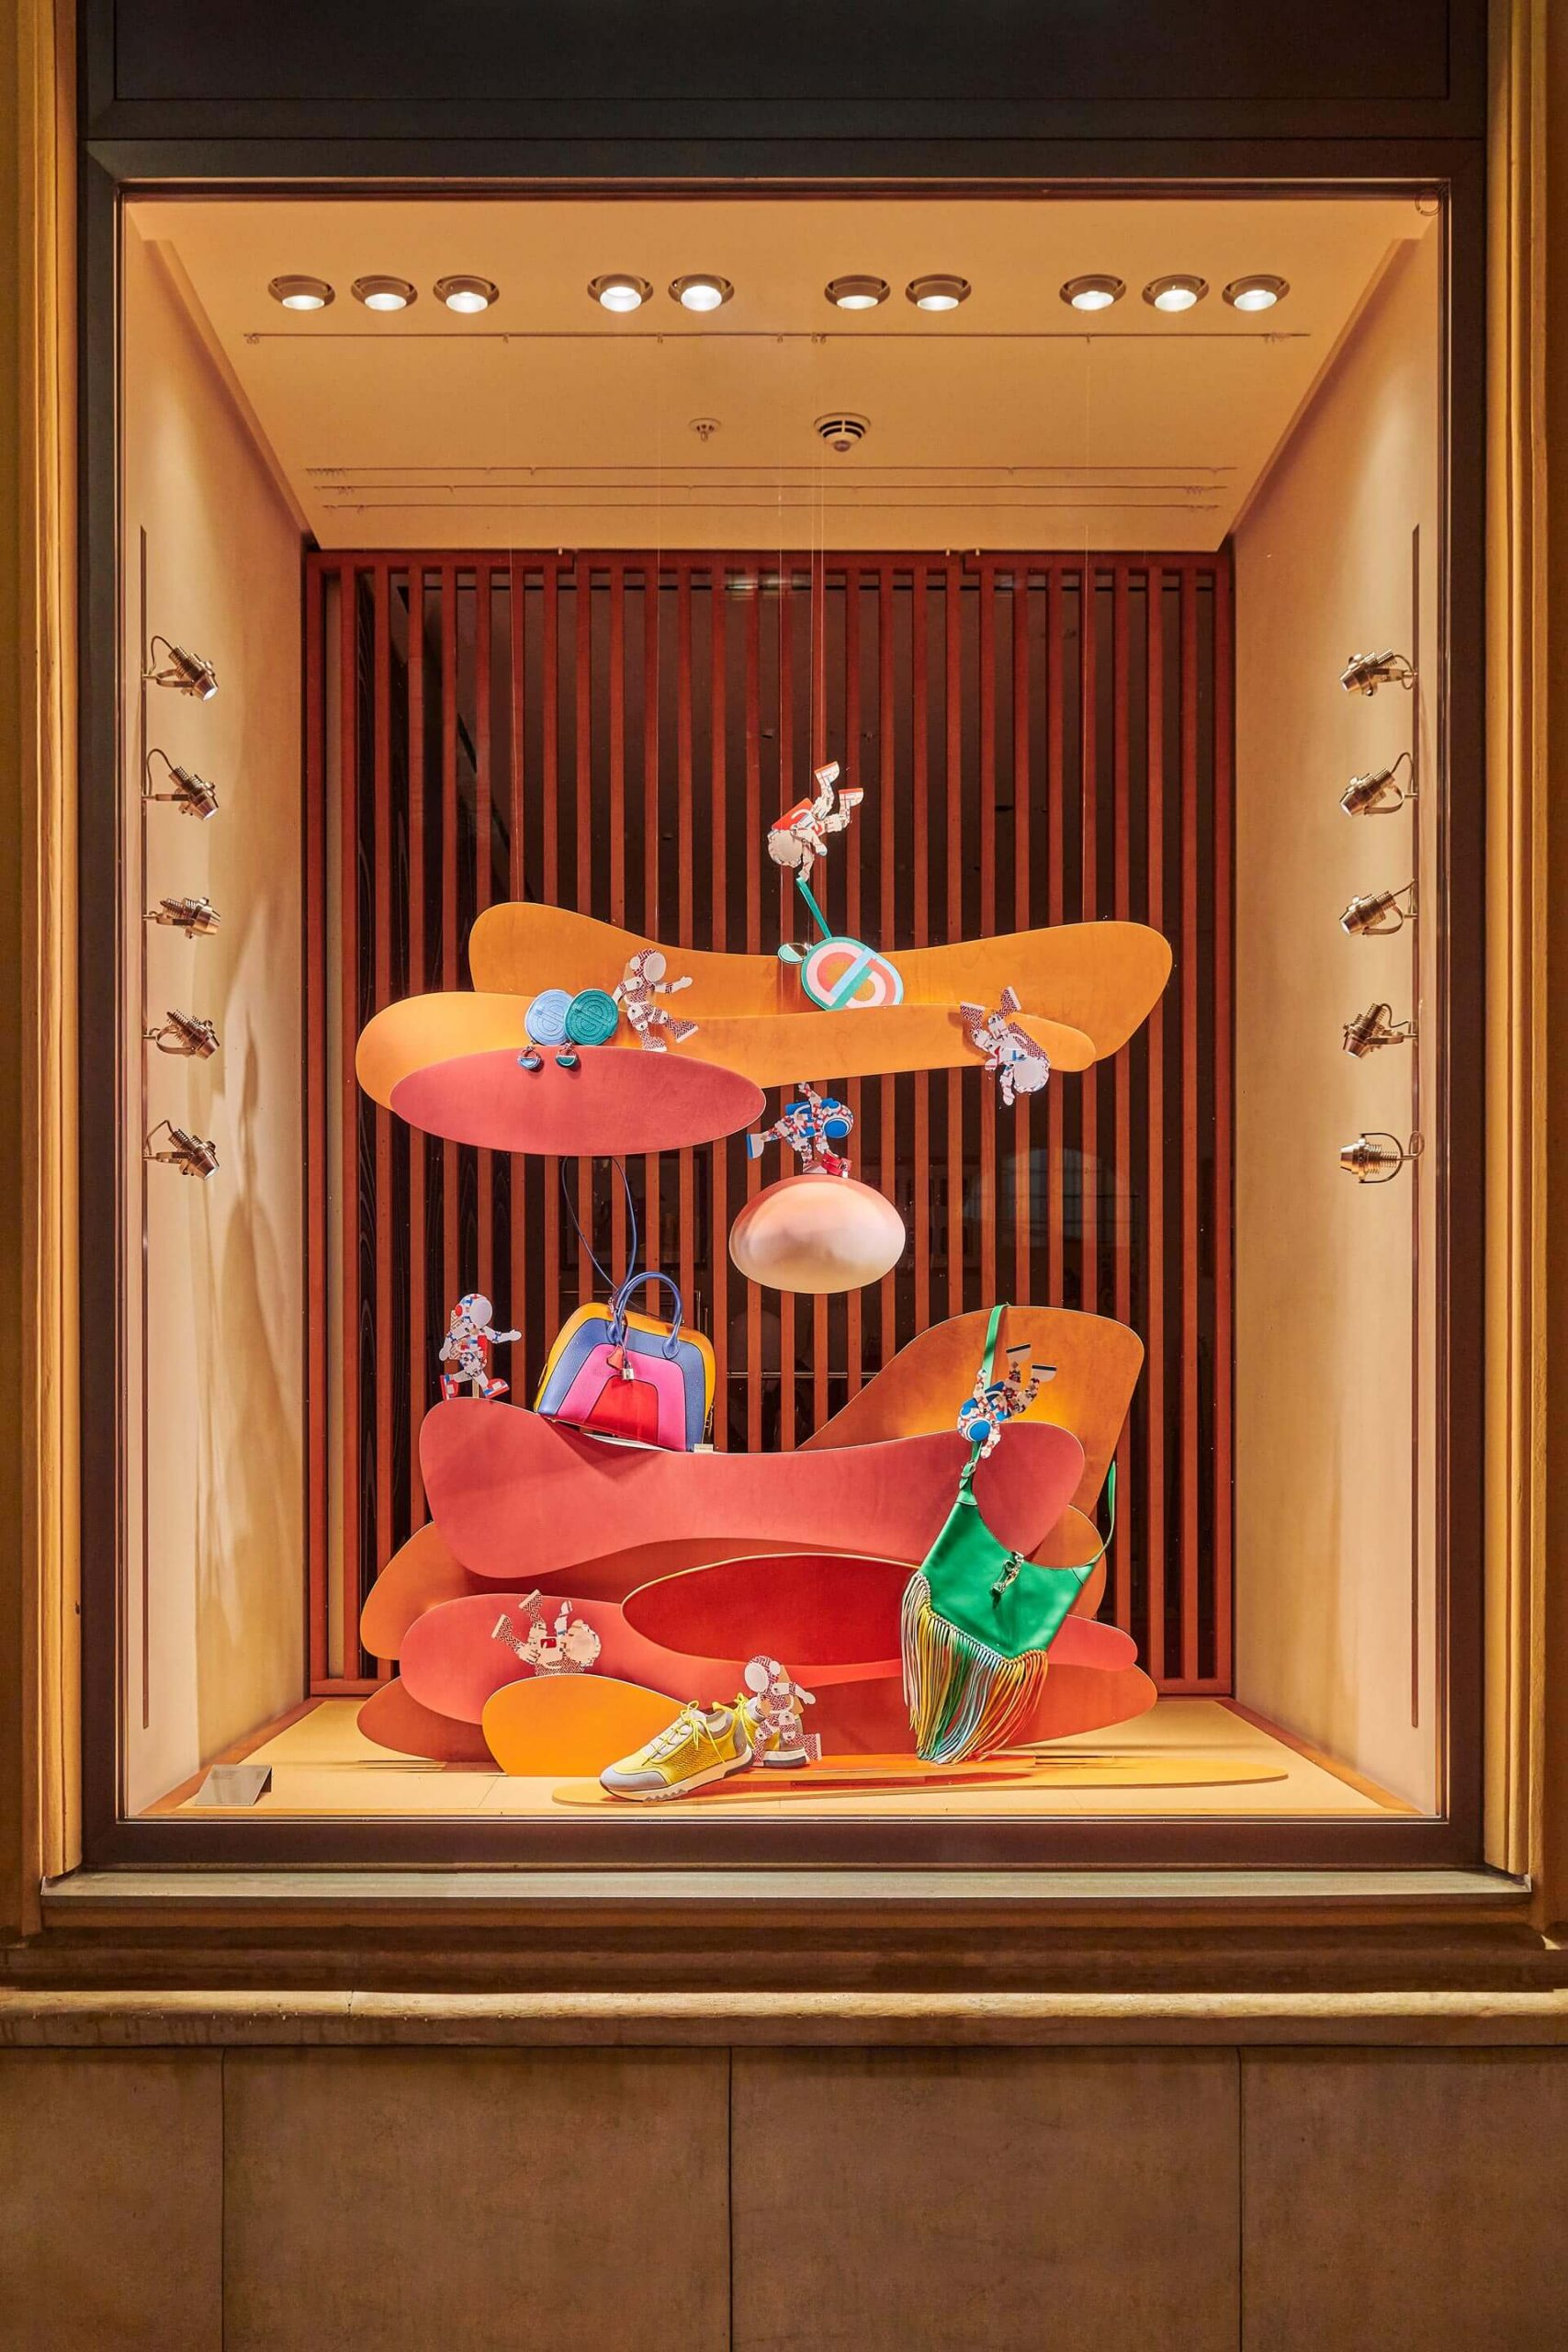 hermes-window-spring21-2